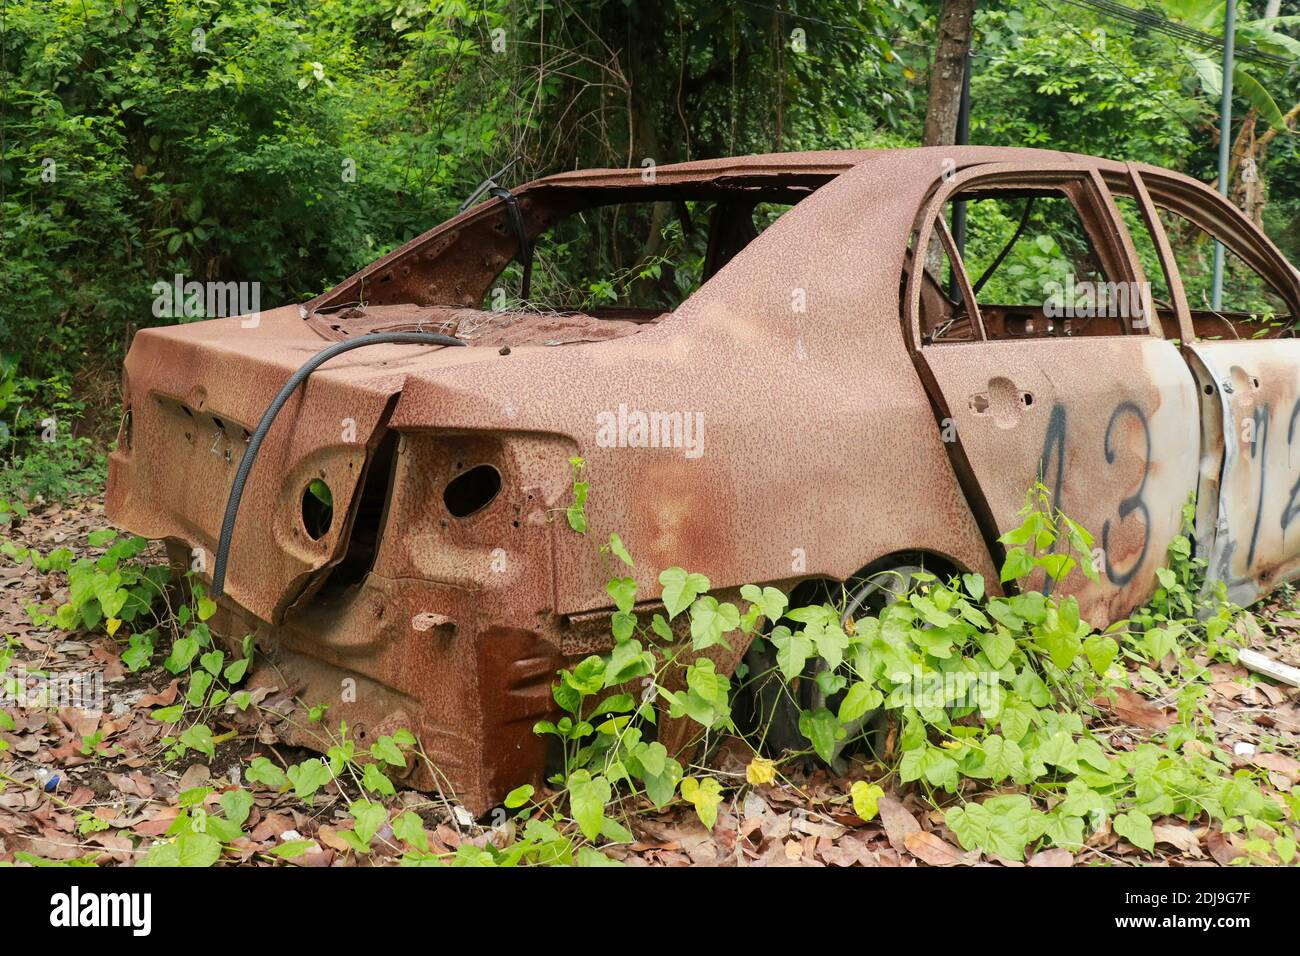 Cars damaged in fire on junkyard. An Old Car Covered in Vines and Pinestraw Stock Photo